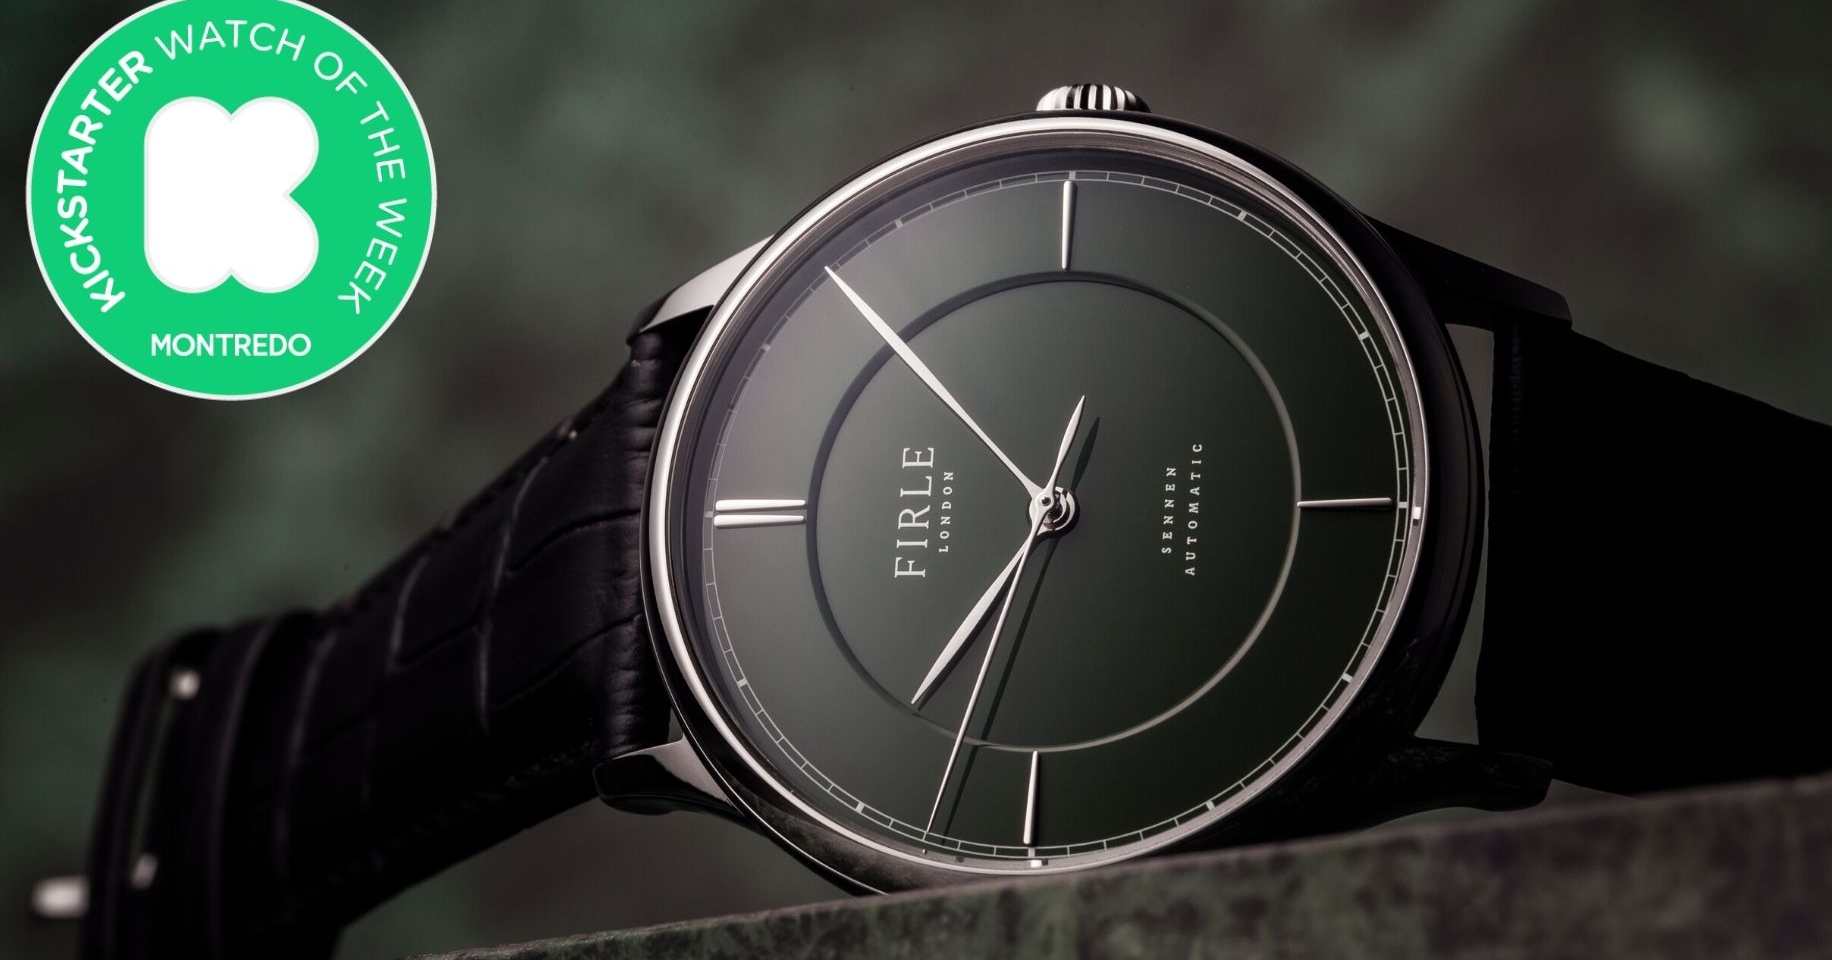 Kickstarter Watch of the Week: Firle Watches and its Sennen Automatic